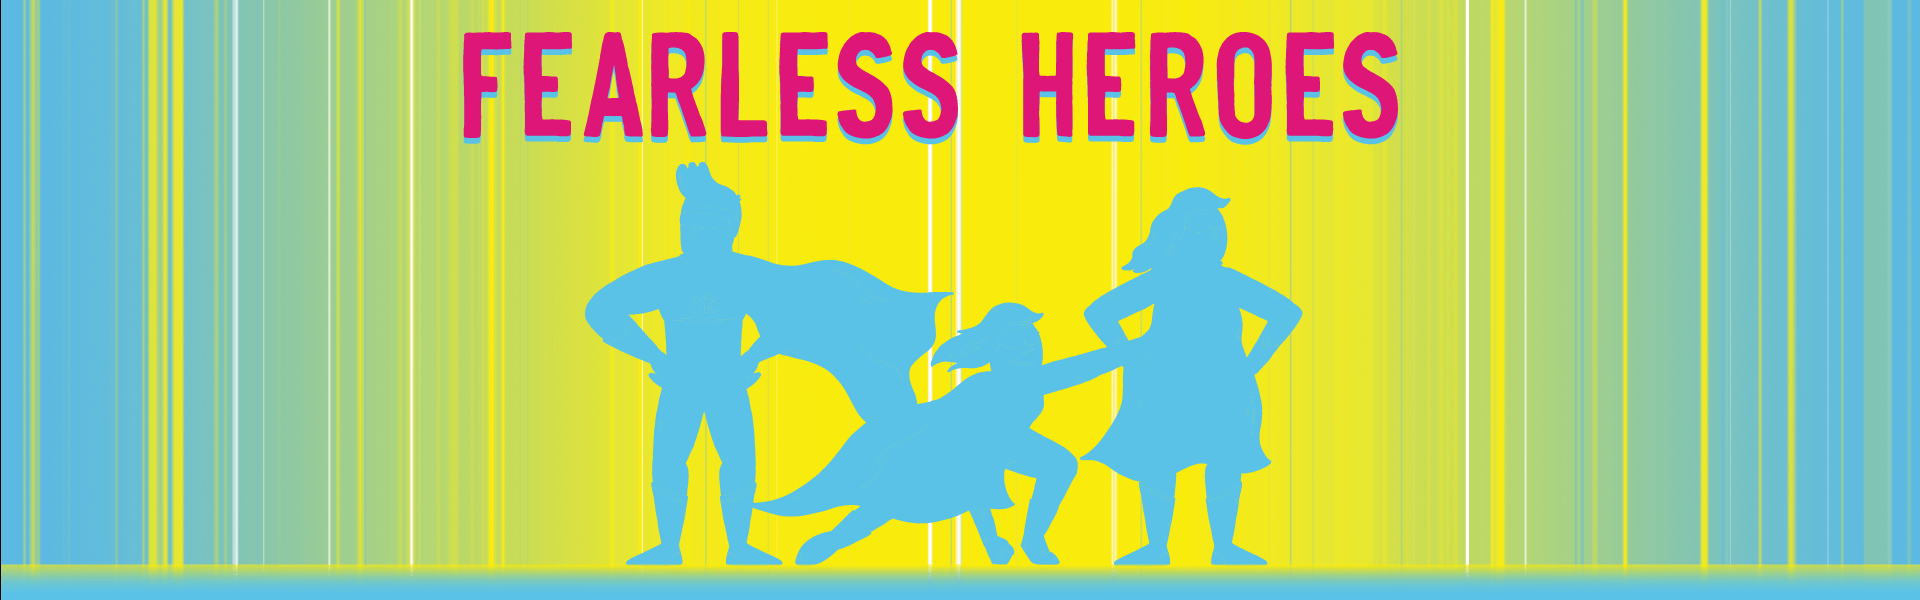 our fearless heroes